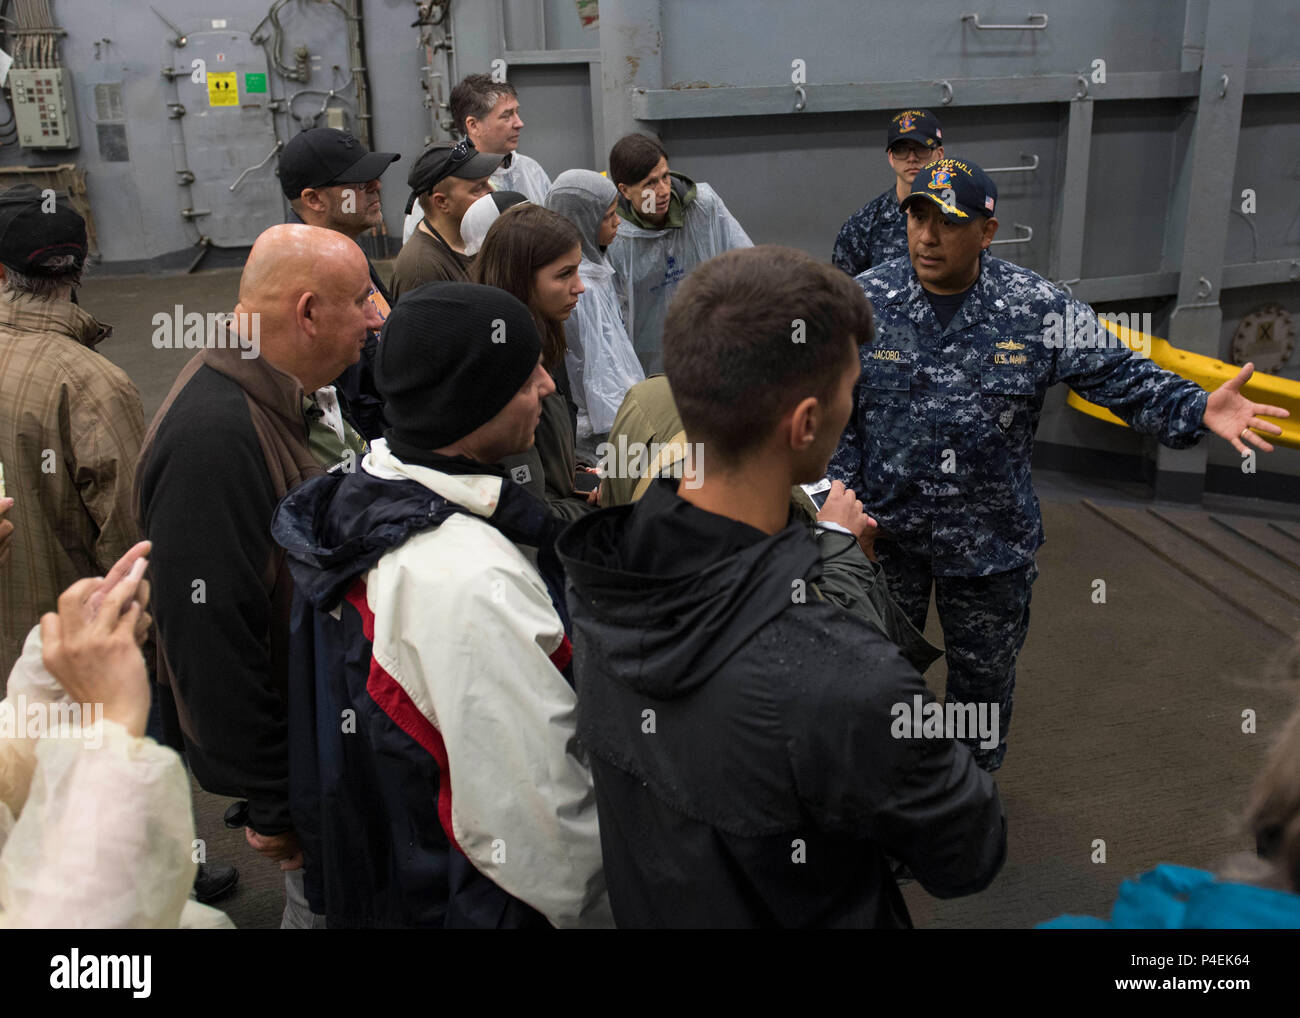 180616-N-TJ319-0121  BALTIC SEA (June 16, 2018) Cmdr. Rod Jacobo, executive officer of the Harpers Ferry-class dock landing ship USS Oak Hill (LSD 51), gives a tour of the ship in Kiel, Germany, during Kiel Week 2018, June 16. Oak Hill, home-ported in Virginia Beach, Virginia, is conducting naval operations in the U.S. 6th Fleet area of operations. (U.S. Navy photo by Mass Communication Specialist 3rd Class Jessica L. Dowell/Released) Stock Photo